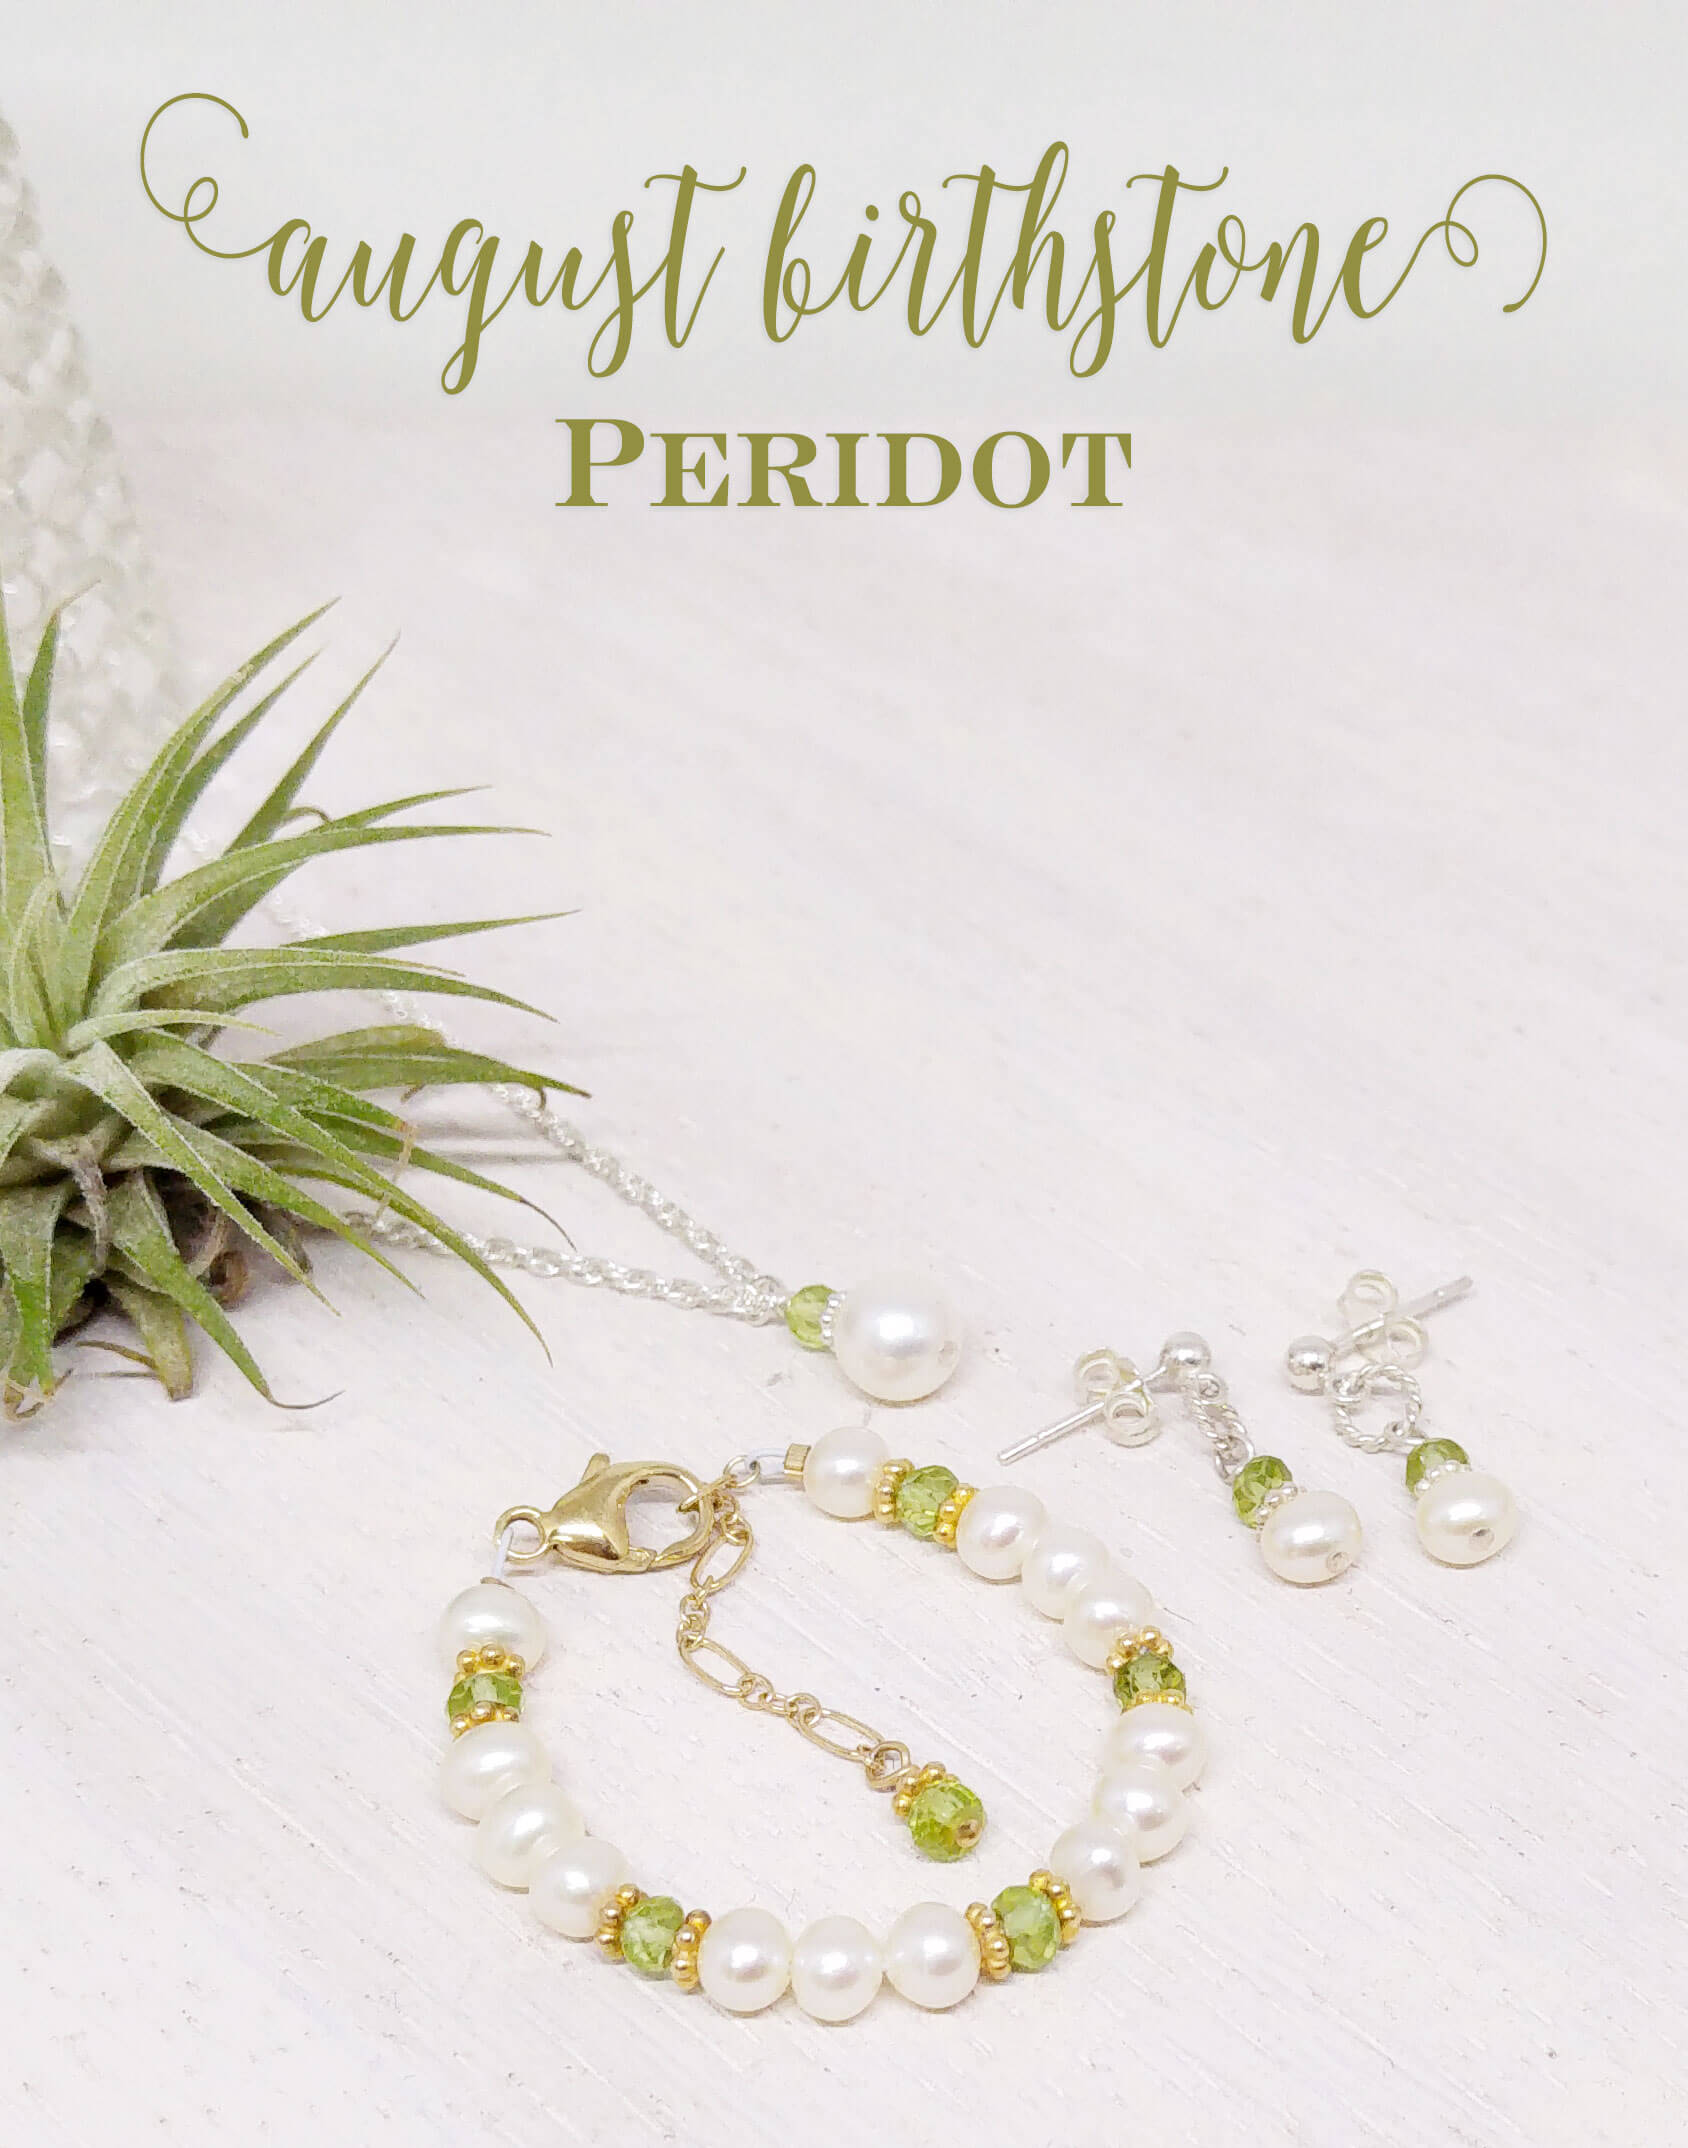 Peridot - August Birthstone | the history of the beautiful green gem for all of you August babies! Little Girl's Pearls ♥